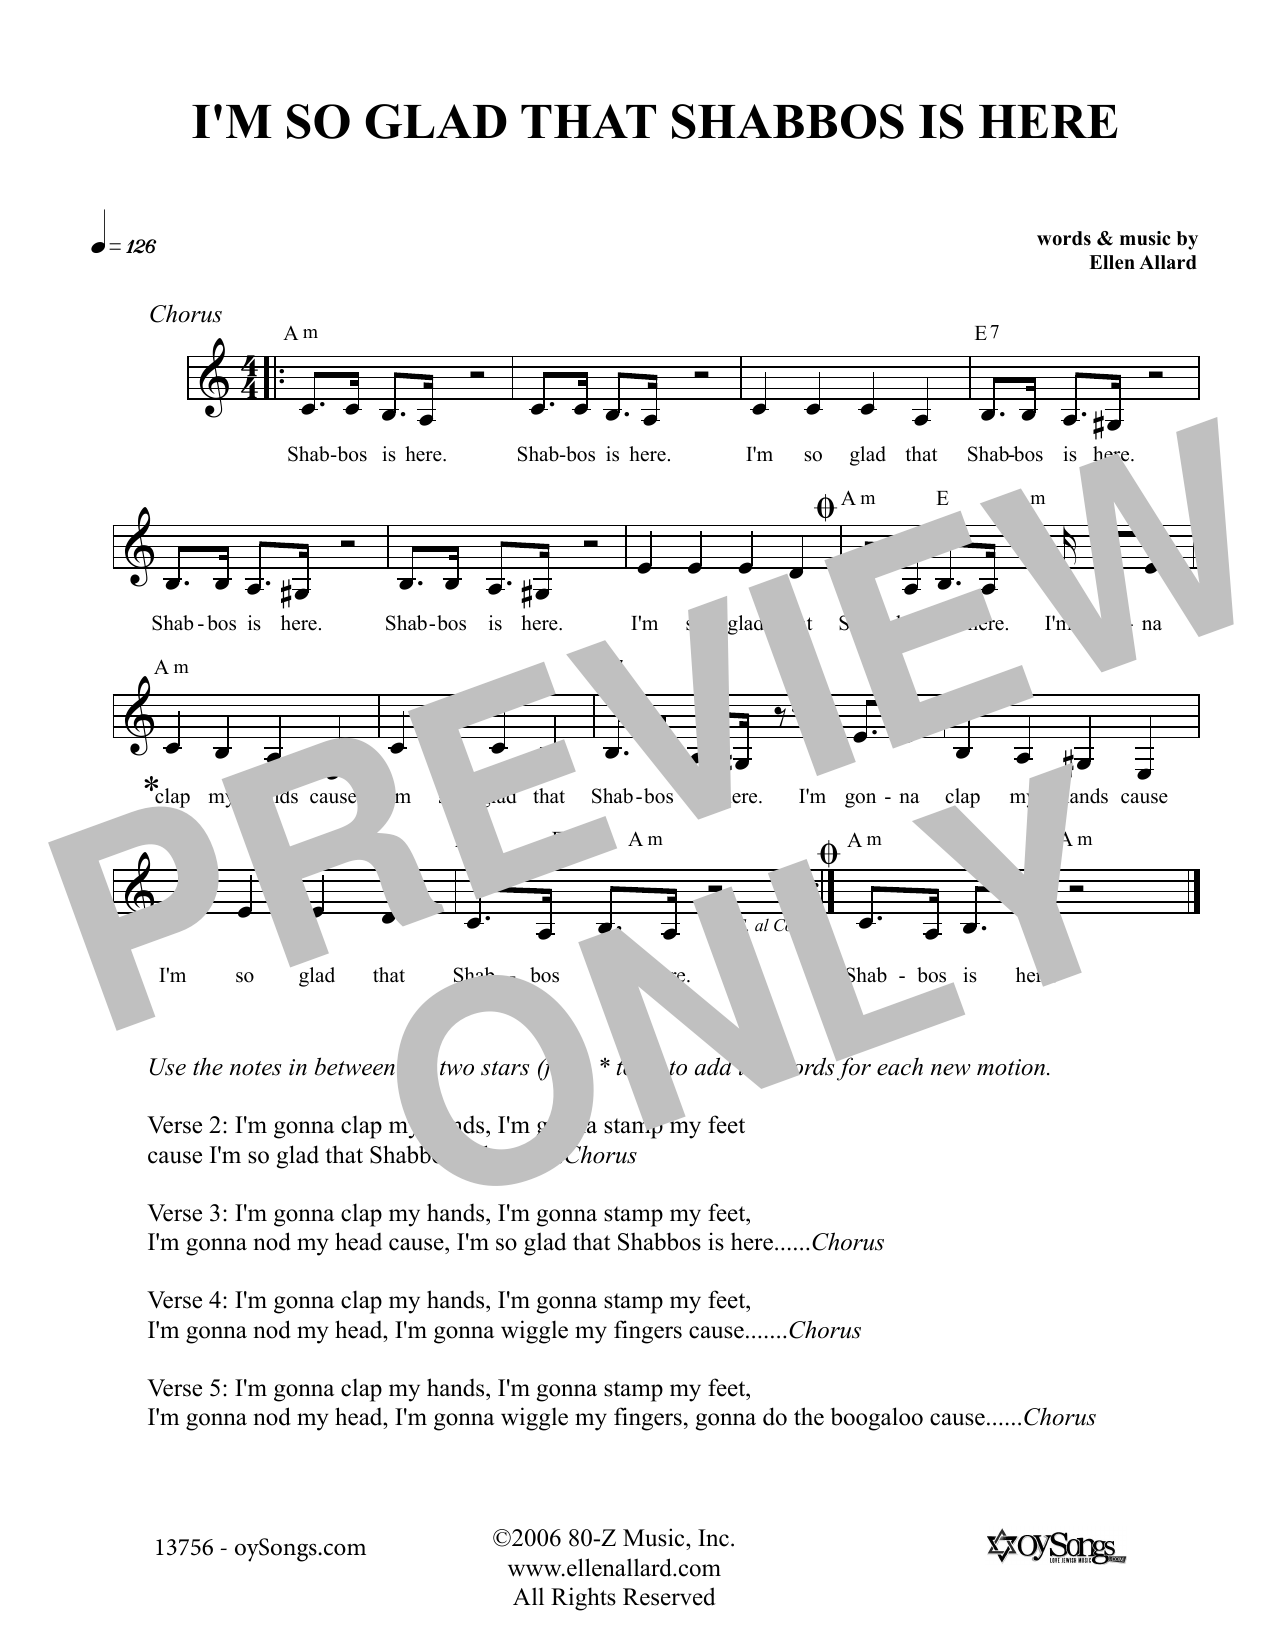 Ellen Allard I'm So Glad That Shabbos Is Here sheet music notes and chords. Download Printable PDF.